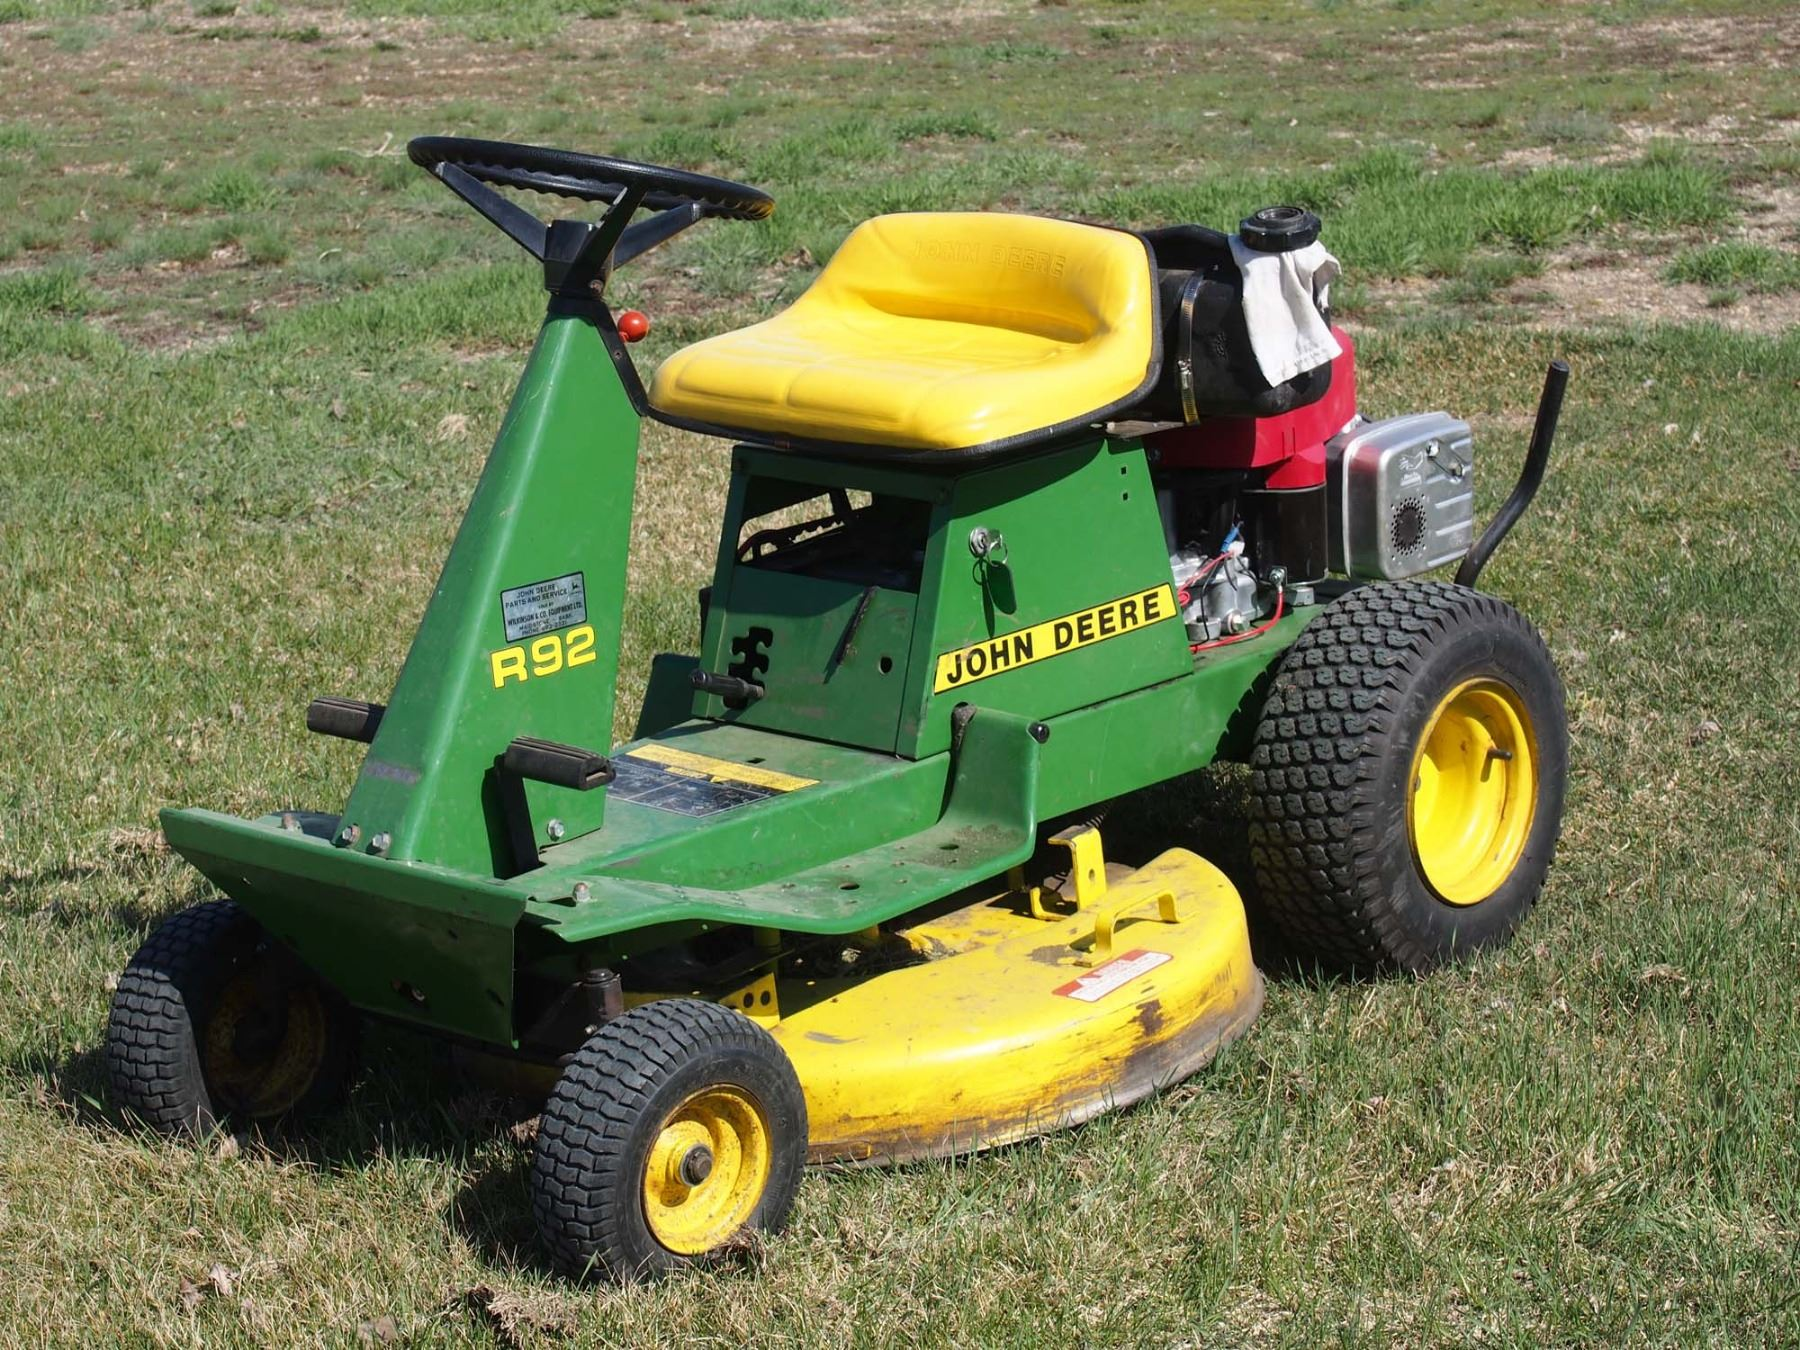 small resolution of image 1 john deere r92 riding lawn mower 10 1 2 hp